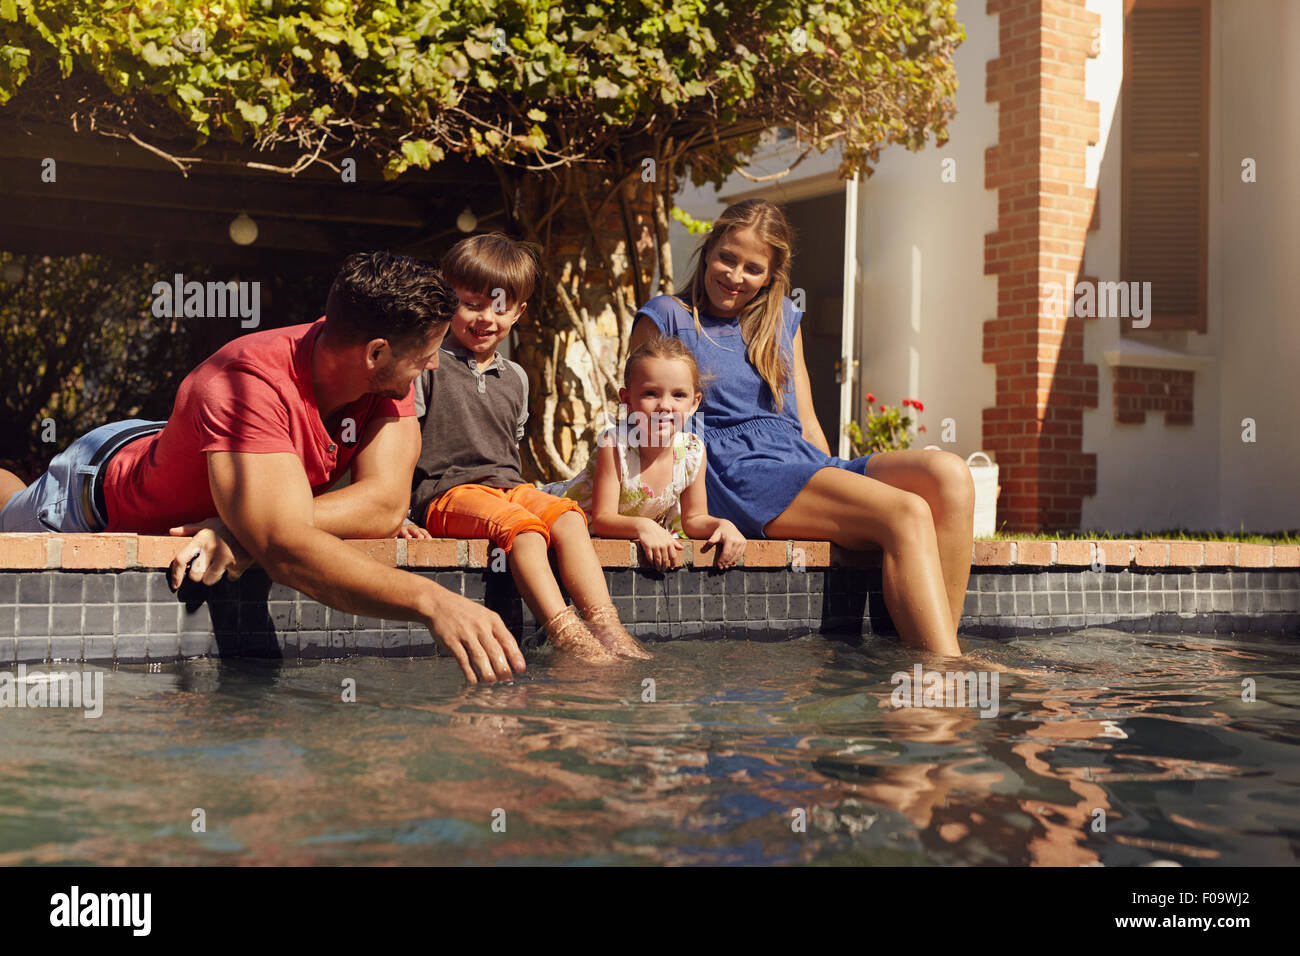 Portrait of young family with two children relaxing by their swimming pool having fun. Parents with kids sitting - Stock Image